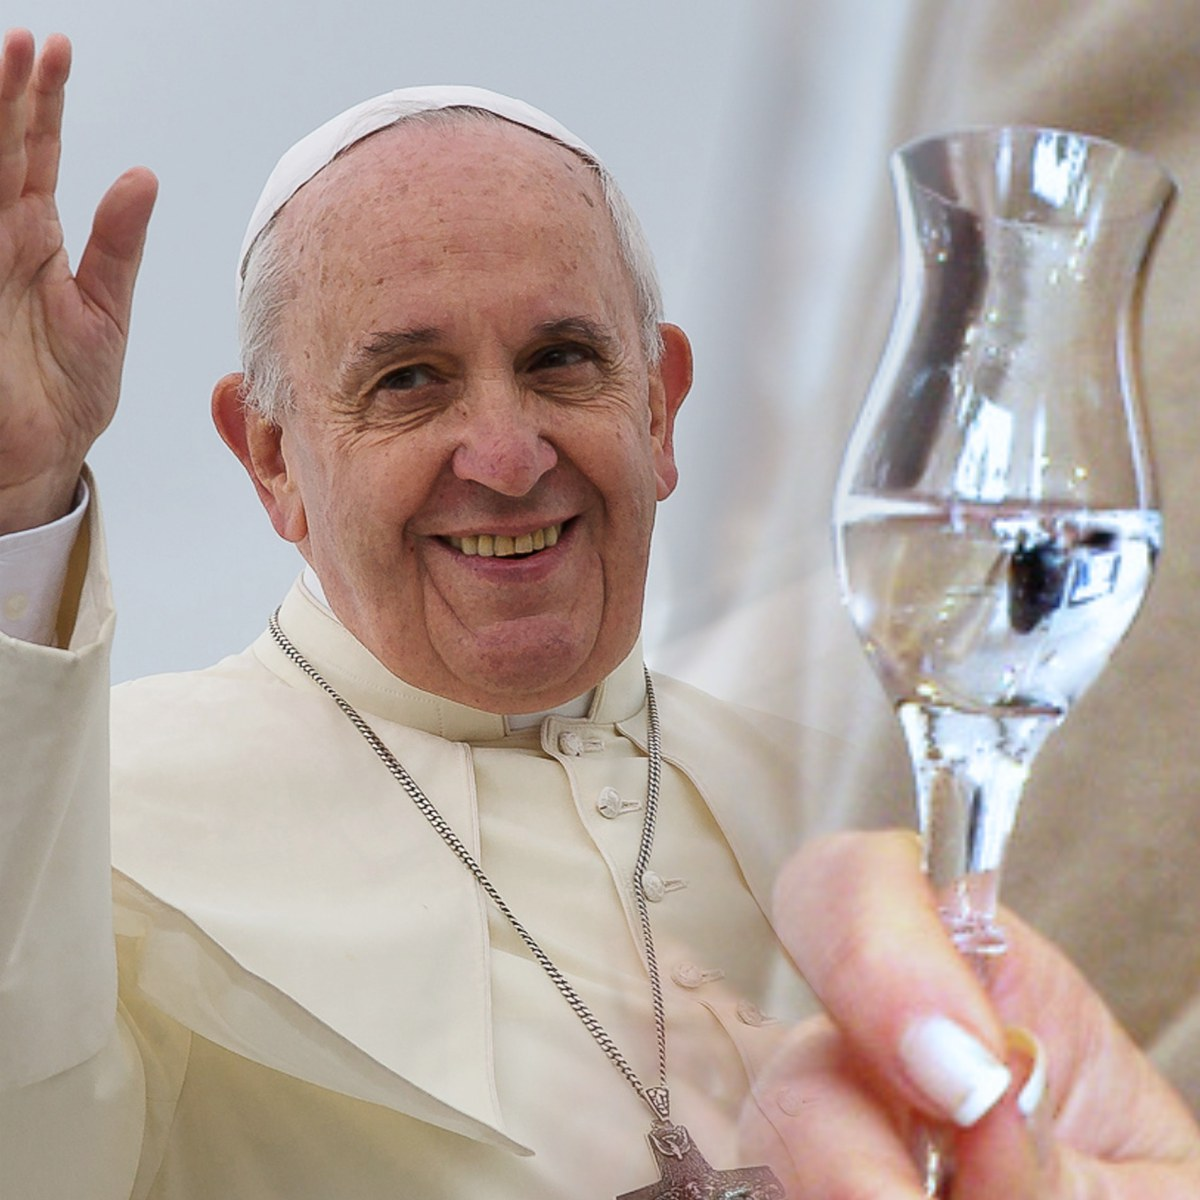 Grappa? A cure-all. Papa Francesco's words.